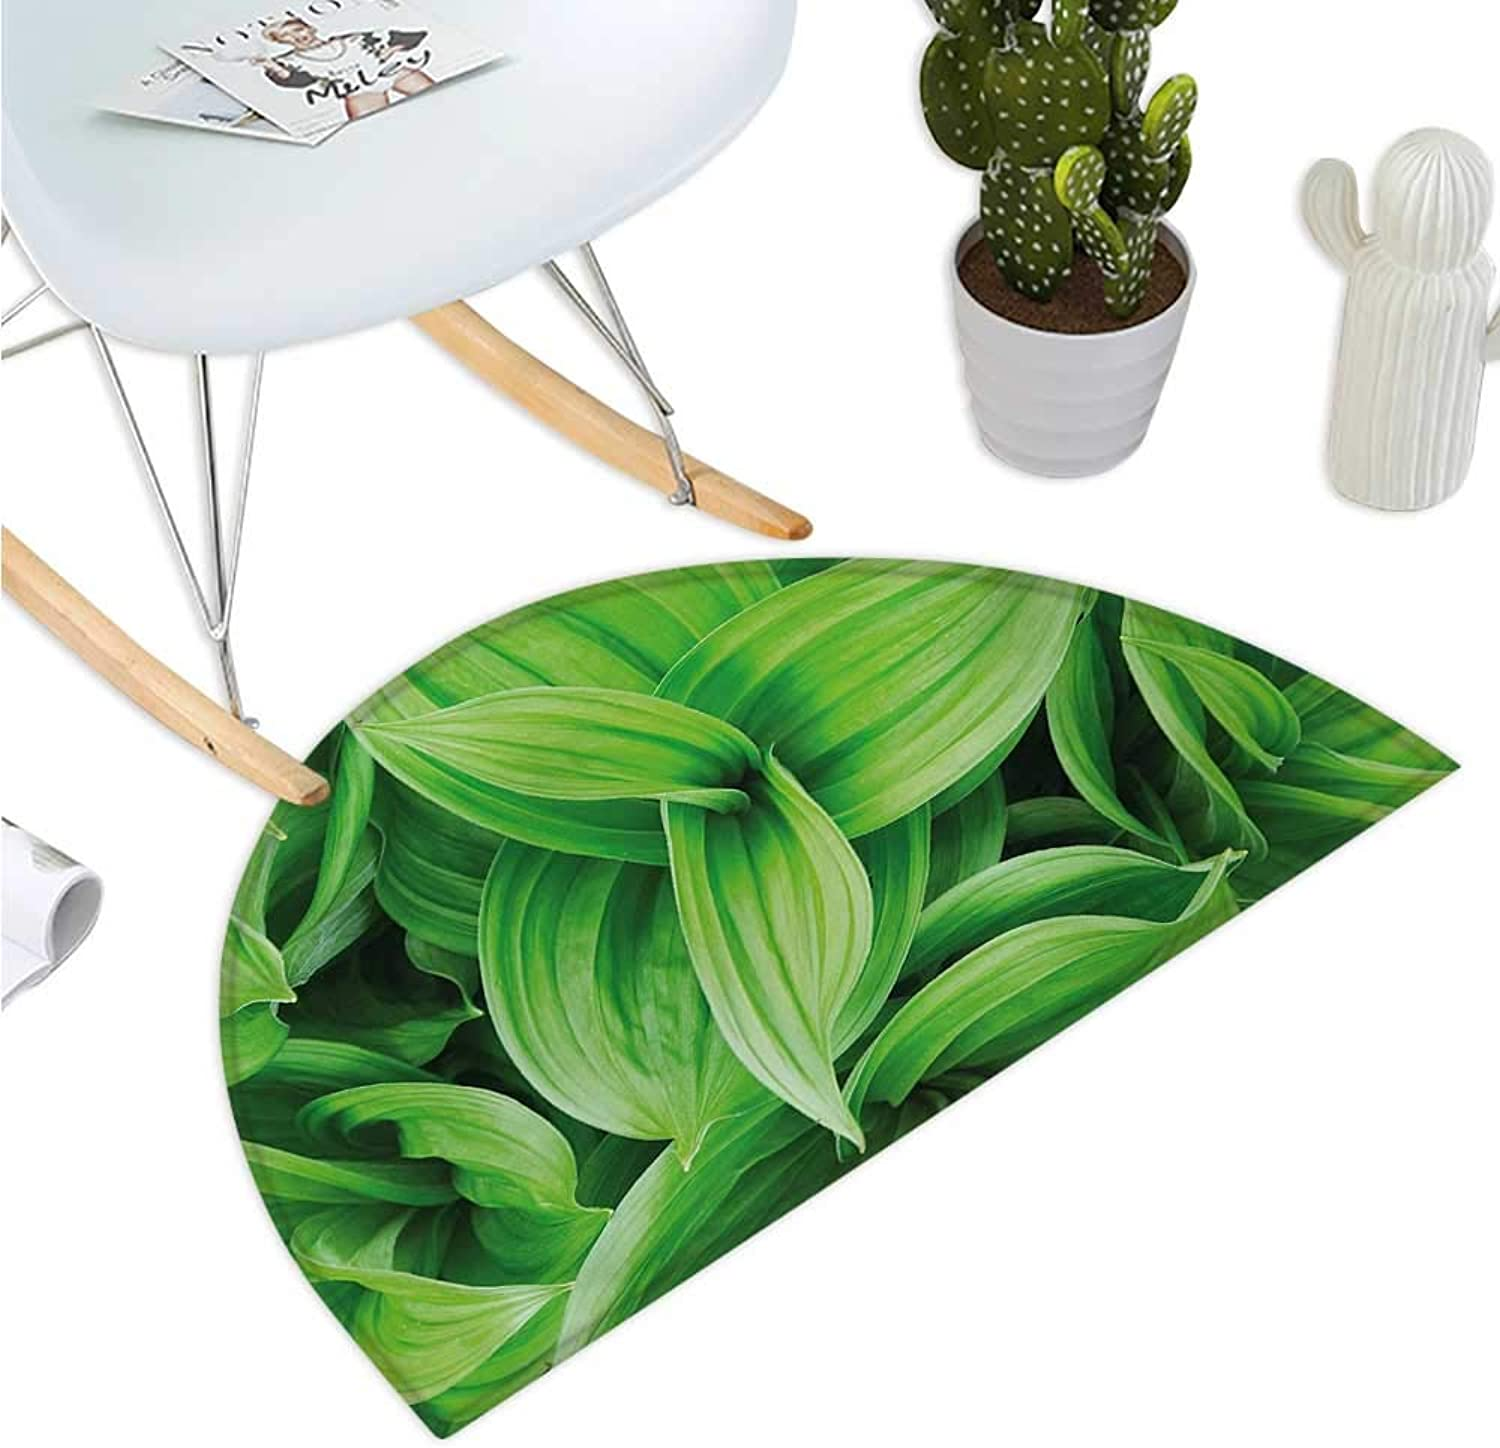 Plant Semicircle Doormat Close-up Beautiful Tropic Foliage Pattern Helleborus Leaves Natural Herbs Wildflowers Entry Door Mat H 47.2  xD 70.8  Lime Green